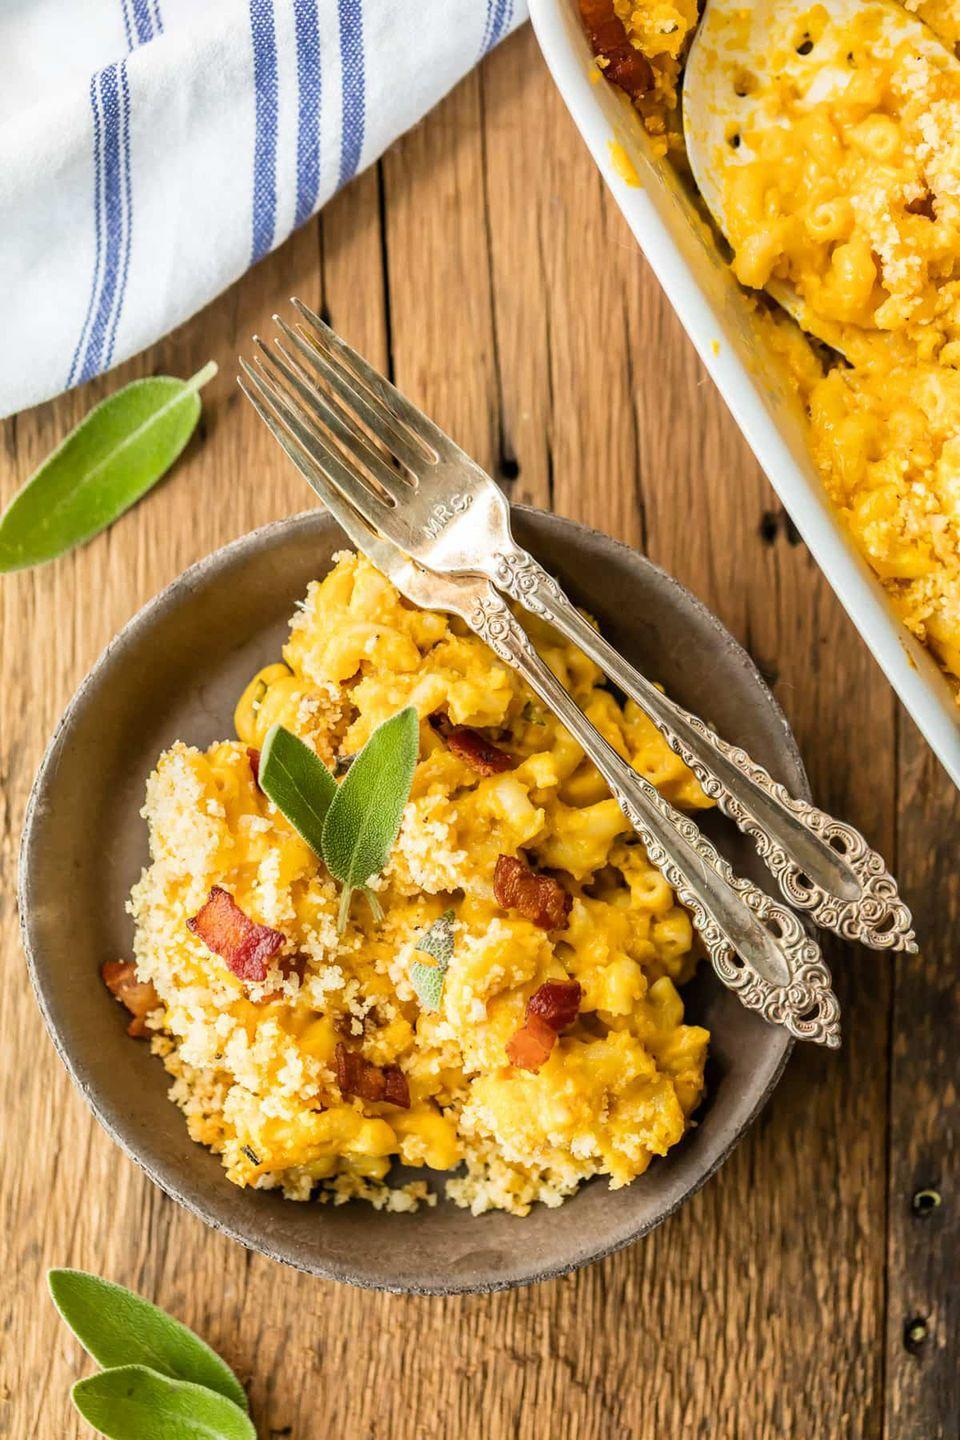 """<p>How do you make mac and cheese <em>even</em> better? Add bacon, mix in pumpkin, and top it all off with bread crumbs!</p><p><strong>Get the recipe at <a href=""""https://www.thecookierookie.com/pumpkin-bacon-mac-cheese/"""" rel=""""nofollow noopener"""" target=""""_blank"""" data-ylk=""""slk:The Cookie Rookie"""" class=""""link rapid-noclick-resp"""">The Cookie Rookie</a>.</strong></p><p><a class=""""link rapid-noclick-resp"""" href=""""https://www.amazon.com/Cuisinart-Classic-Nonstick-Hard-Anodized-Saucepan/dp/B00213JO92?tag=syn-yahoo-20&ascsubtag=%5Bartid%7C10050.g.619%5Bsrc%7Cyahoo-us"""" rel=""""nofollow noopener"""" target=""""_blank"""" data-ylk=""""slk:SHOP SAUCEPANS"""">SHOP SAUCEPANS</a></p>"""